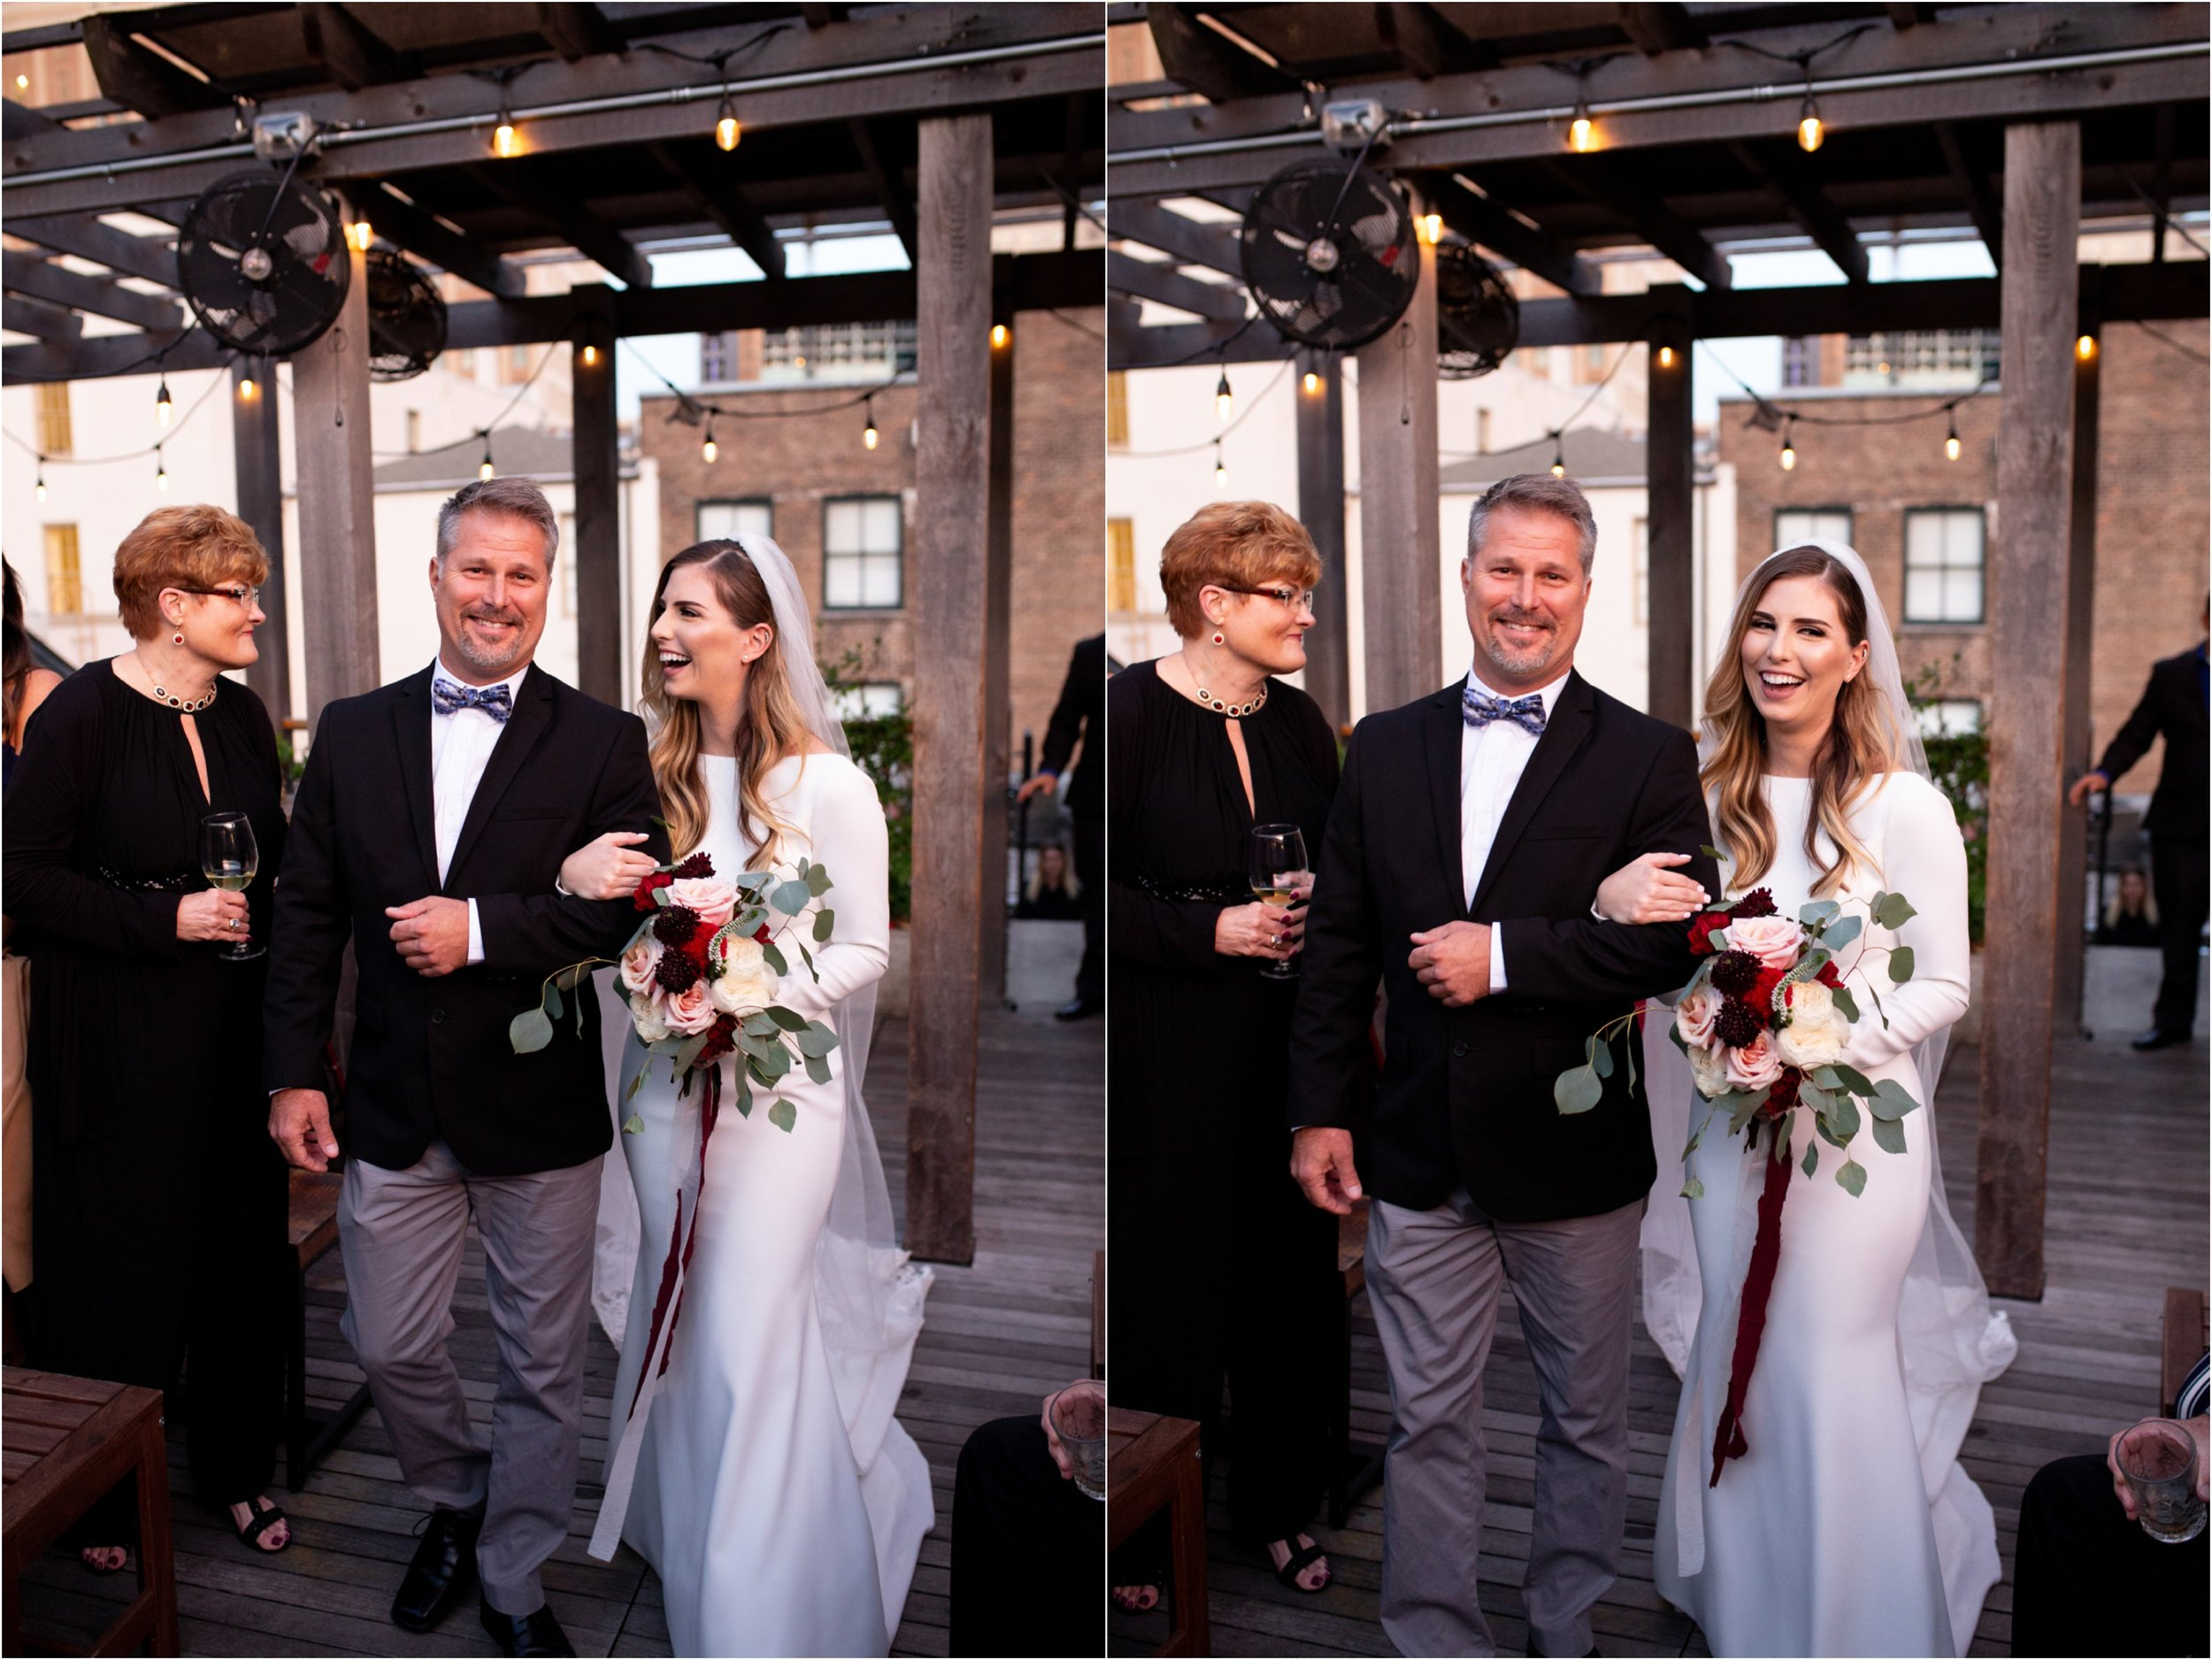 Catahoula Hotel Rooftop Wedding Ceremony New Orleans Wedding Photographer Ashley Biltz Photography34.jpg